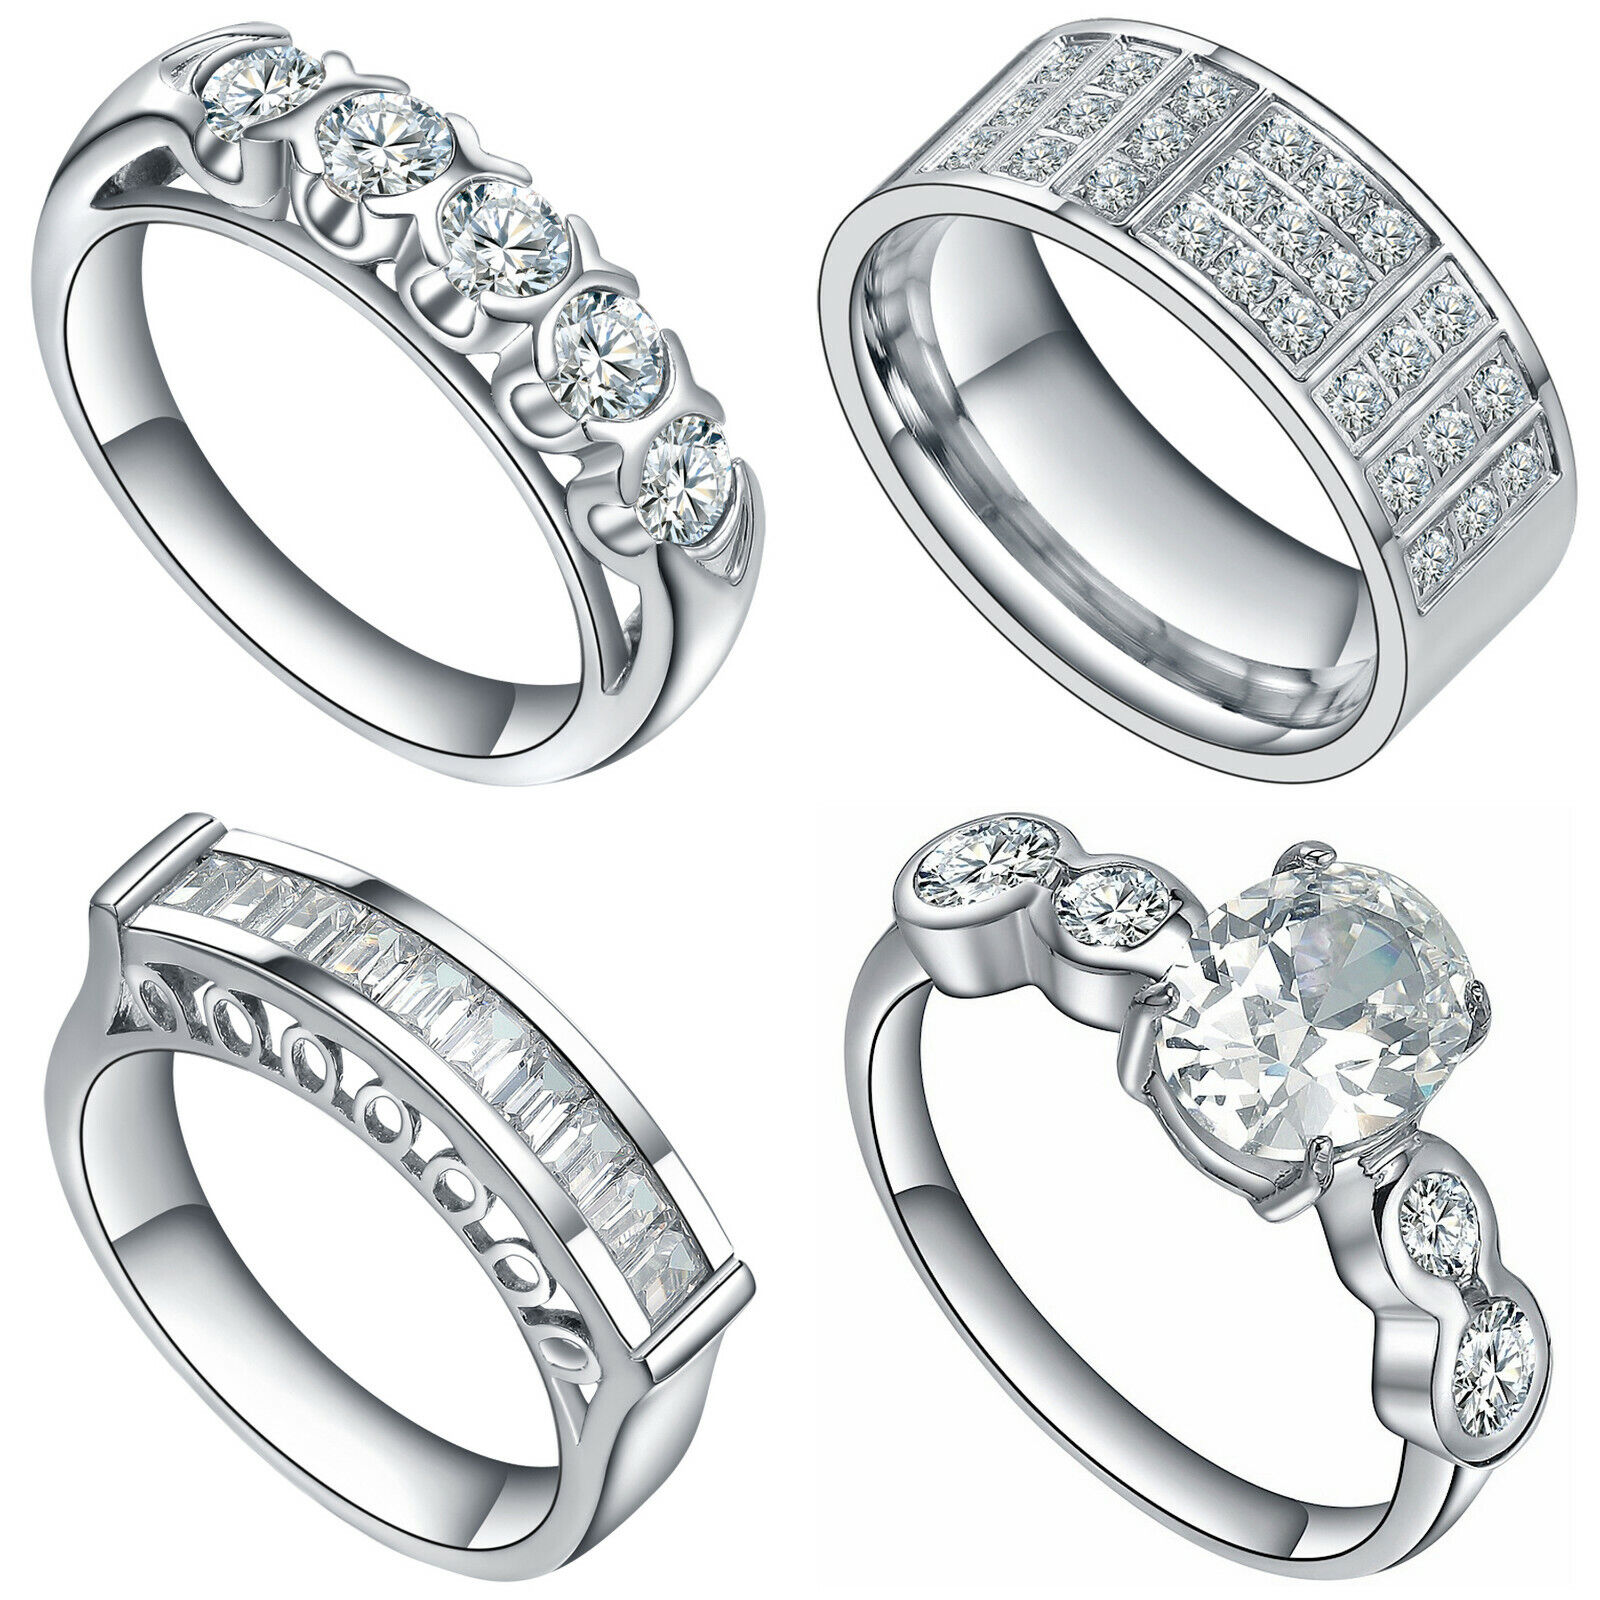 Women's Stainless Steel Cubic Zirconia Multi Stone Cocktail Engagement Ring Fashion Jewelry